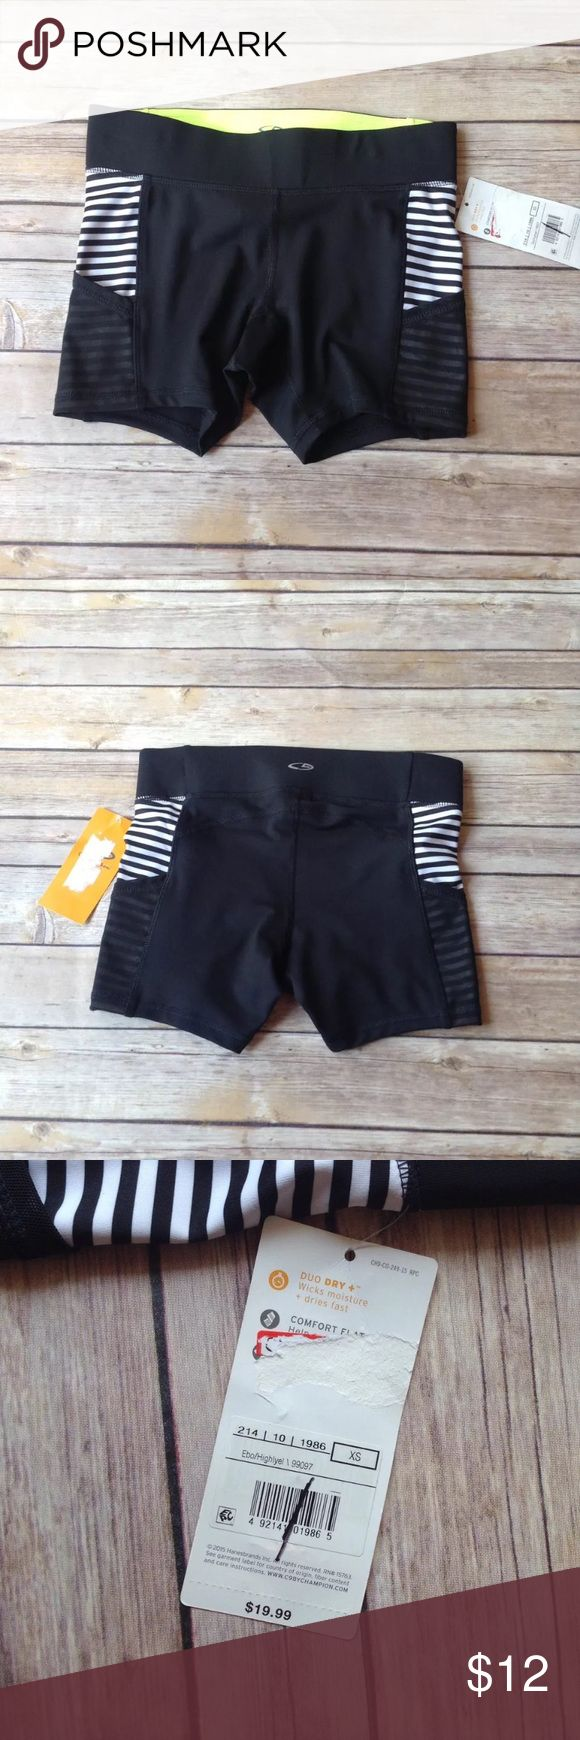 """C9 by Champion black and white compression shorts New with tags C9 by Champion women's size XS black and white compression shorts with mesh side pockets. Excellent condition. No rips holes or stains. 87% polyester 13% spandex. Retail $19.99.  Measurements: Length- 11"""" Waist- 25""""- 28"""" Inseam- 4""""  I ship fast! Pay before 4:30pm Monday thru Friday and I will ship the same day! Thank you for looking! Check out my other items! Champion Shorts"""